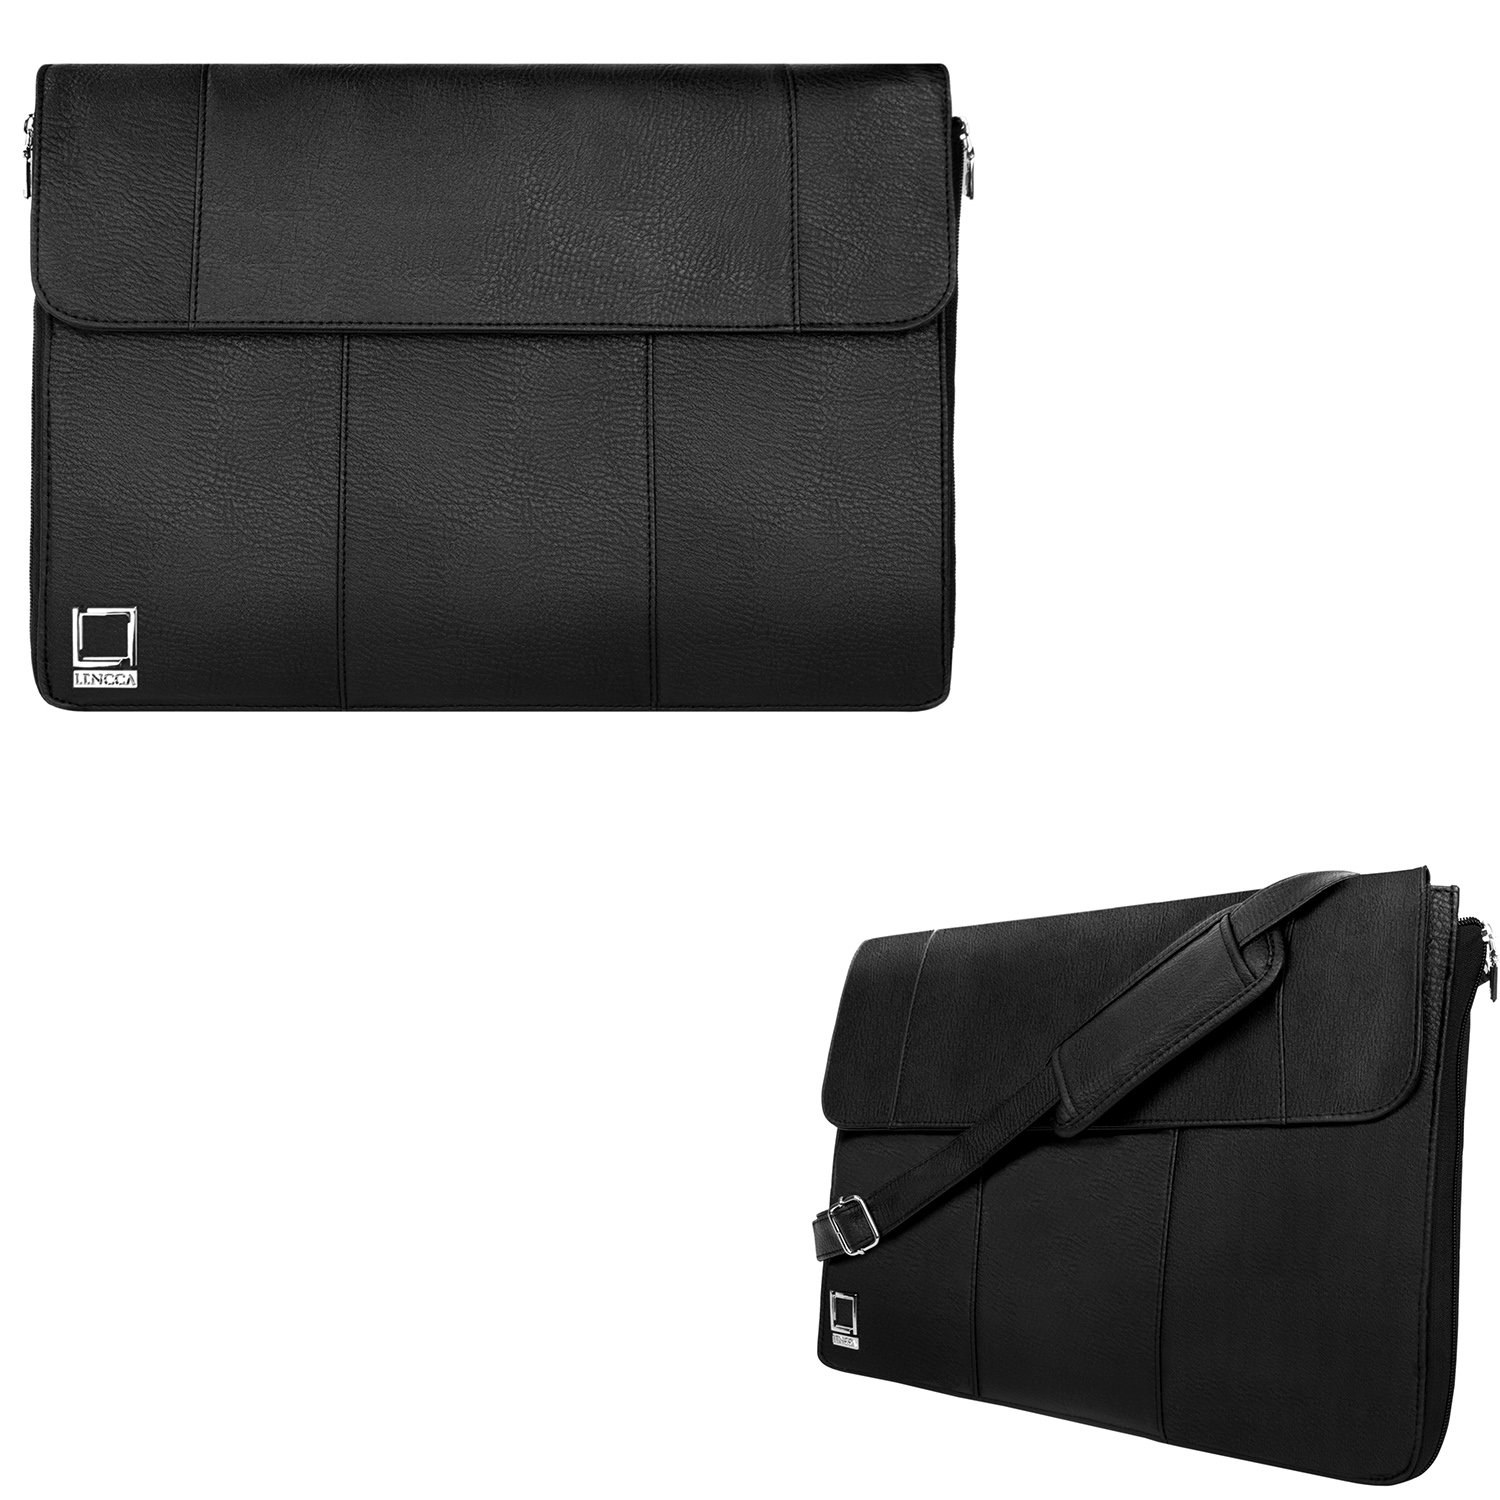 Black Laptop Shoulder Bag Briefcase Tablet Sleeve Messenger Bag 11.6inch to 13.3inch for Dell Latitude 11 / Latitude 12 / Inspiron 13 7000 / Inspiron 13 5000 / Chromebook 13 / Chromebook 11